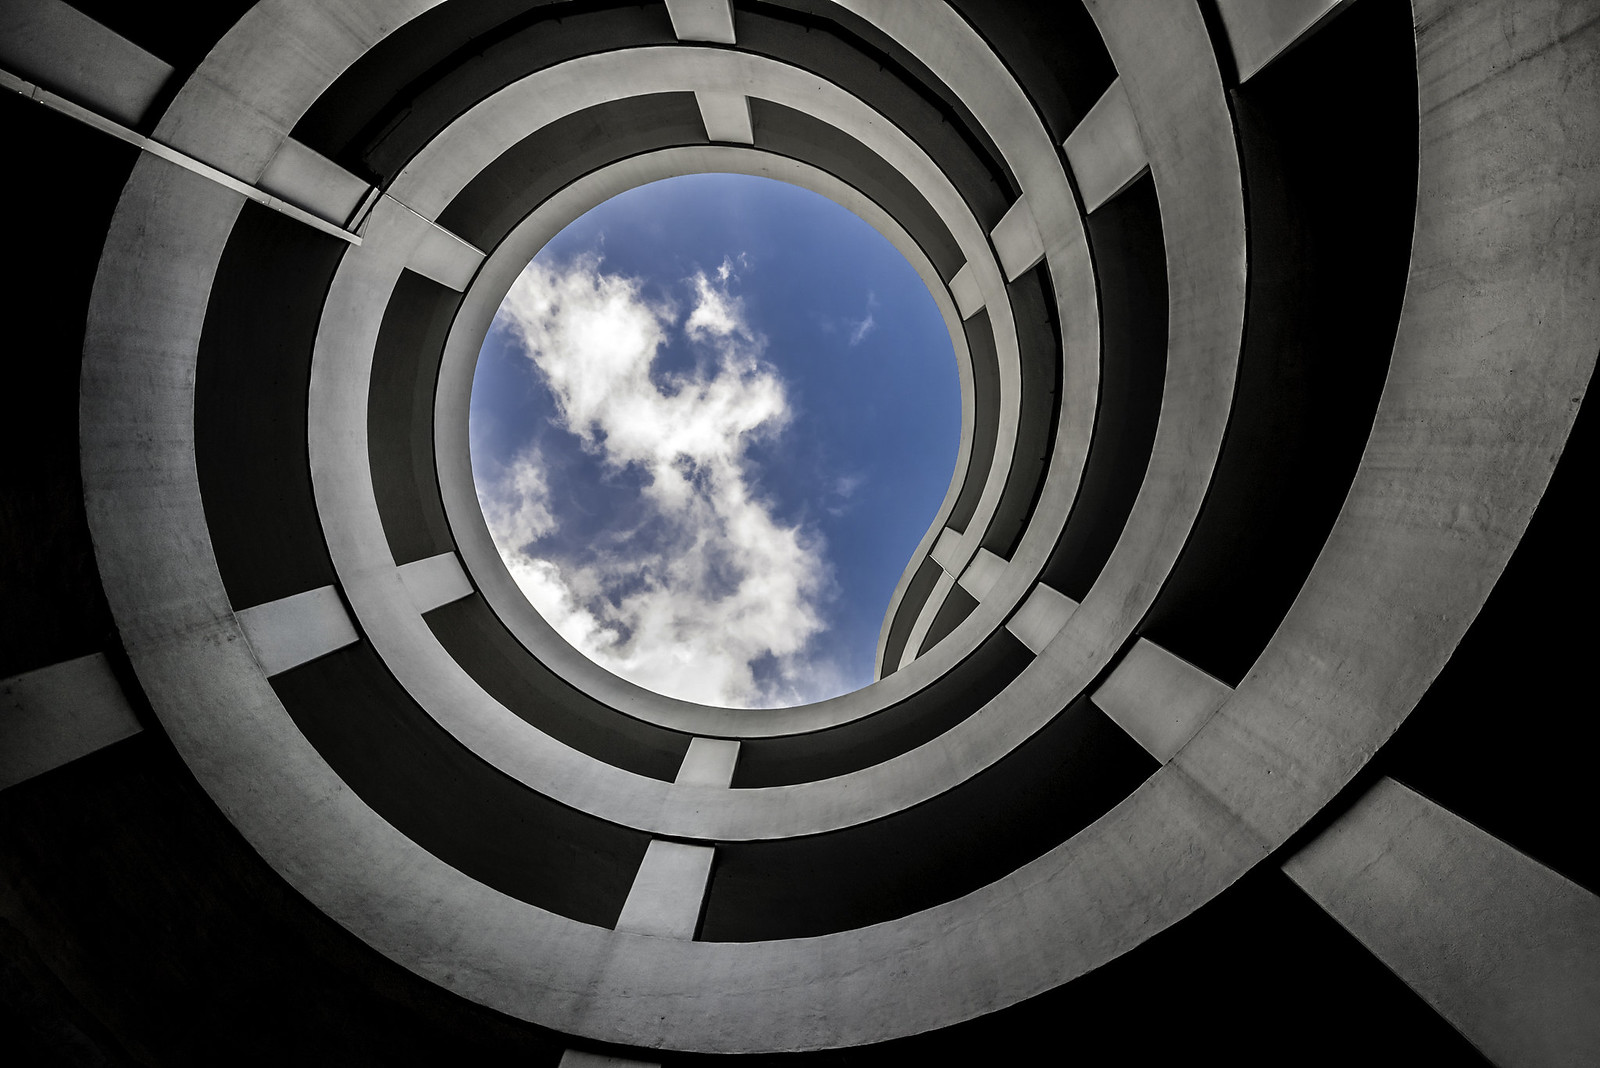 Spiral to the sky by Carsten Heyer